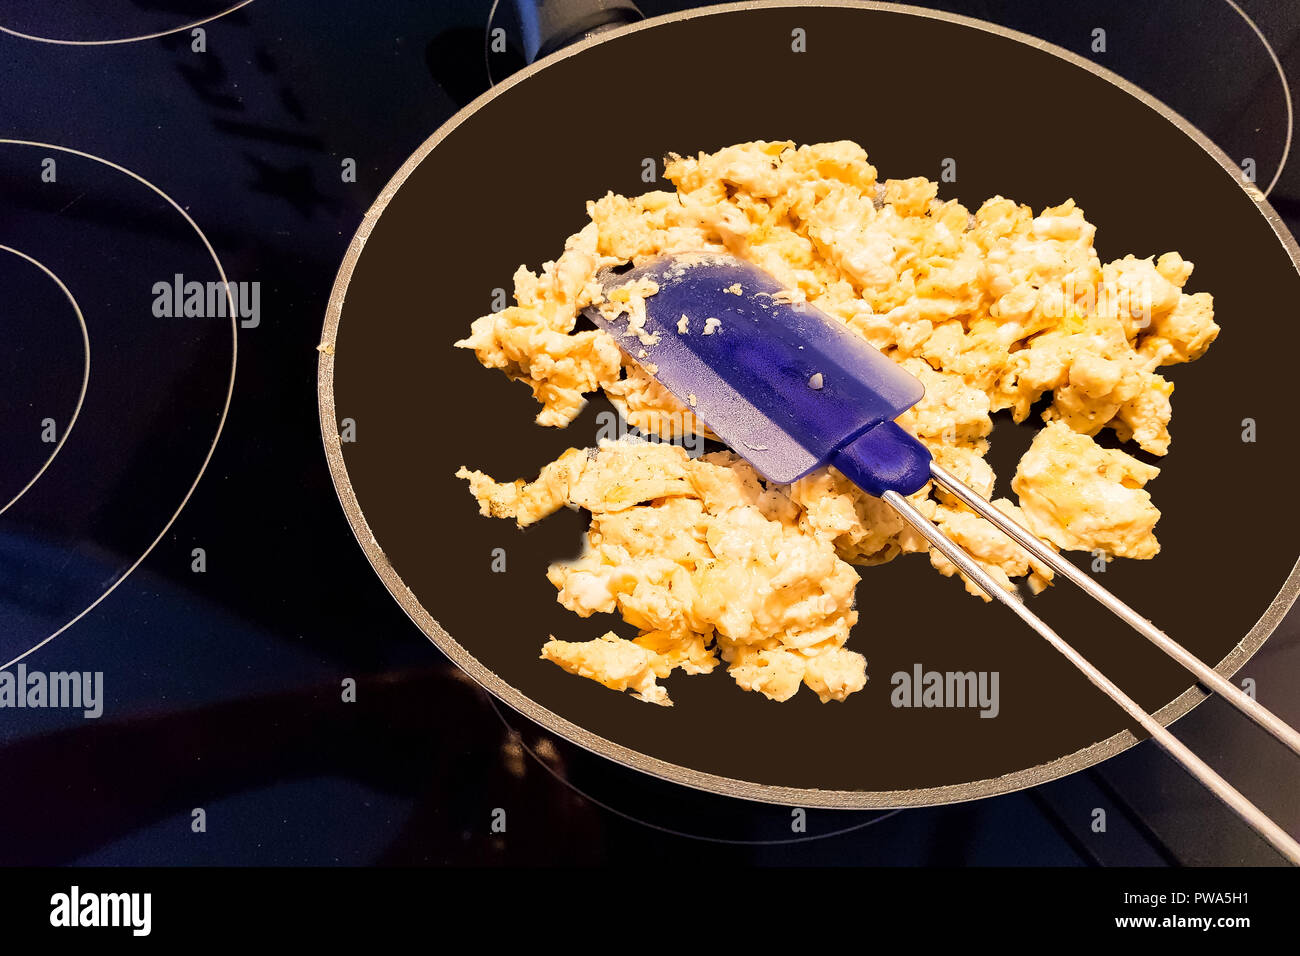 Scrambled eggs in a pan on an induction hob - Stock Image